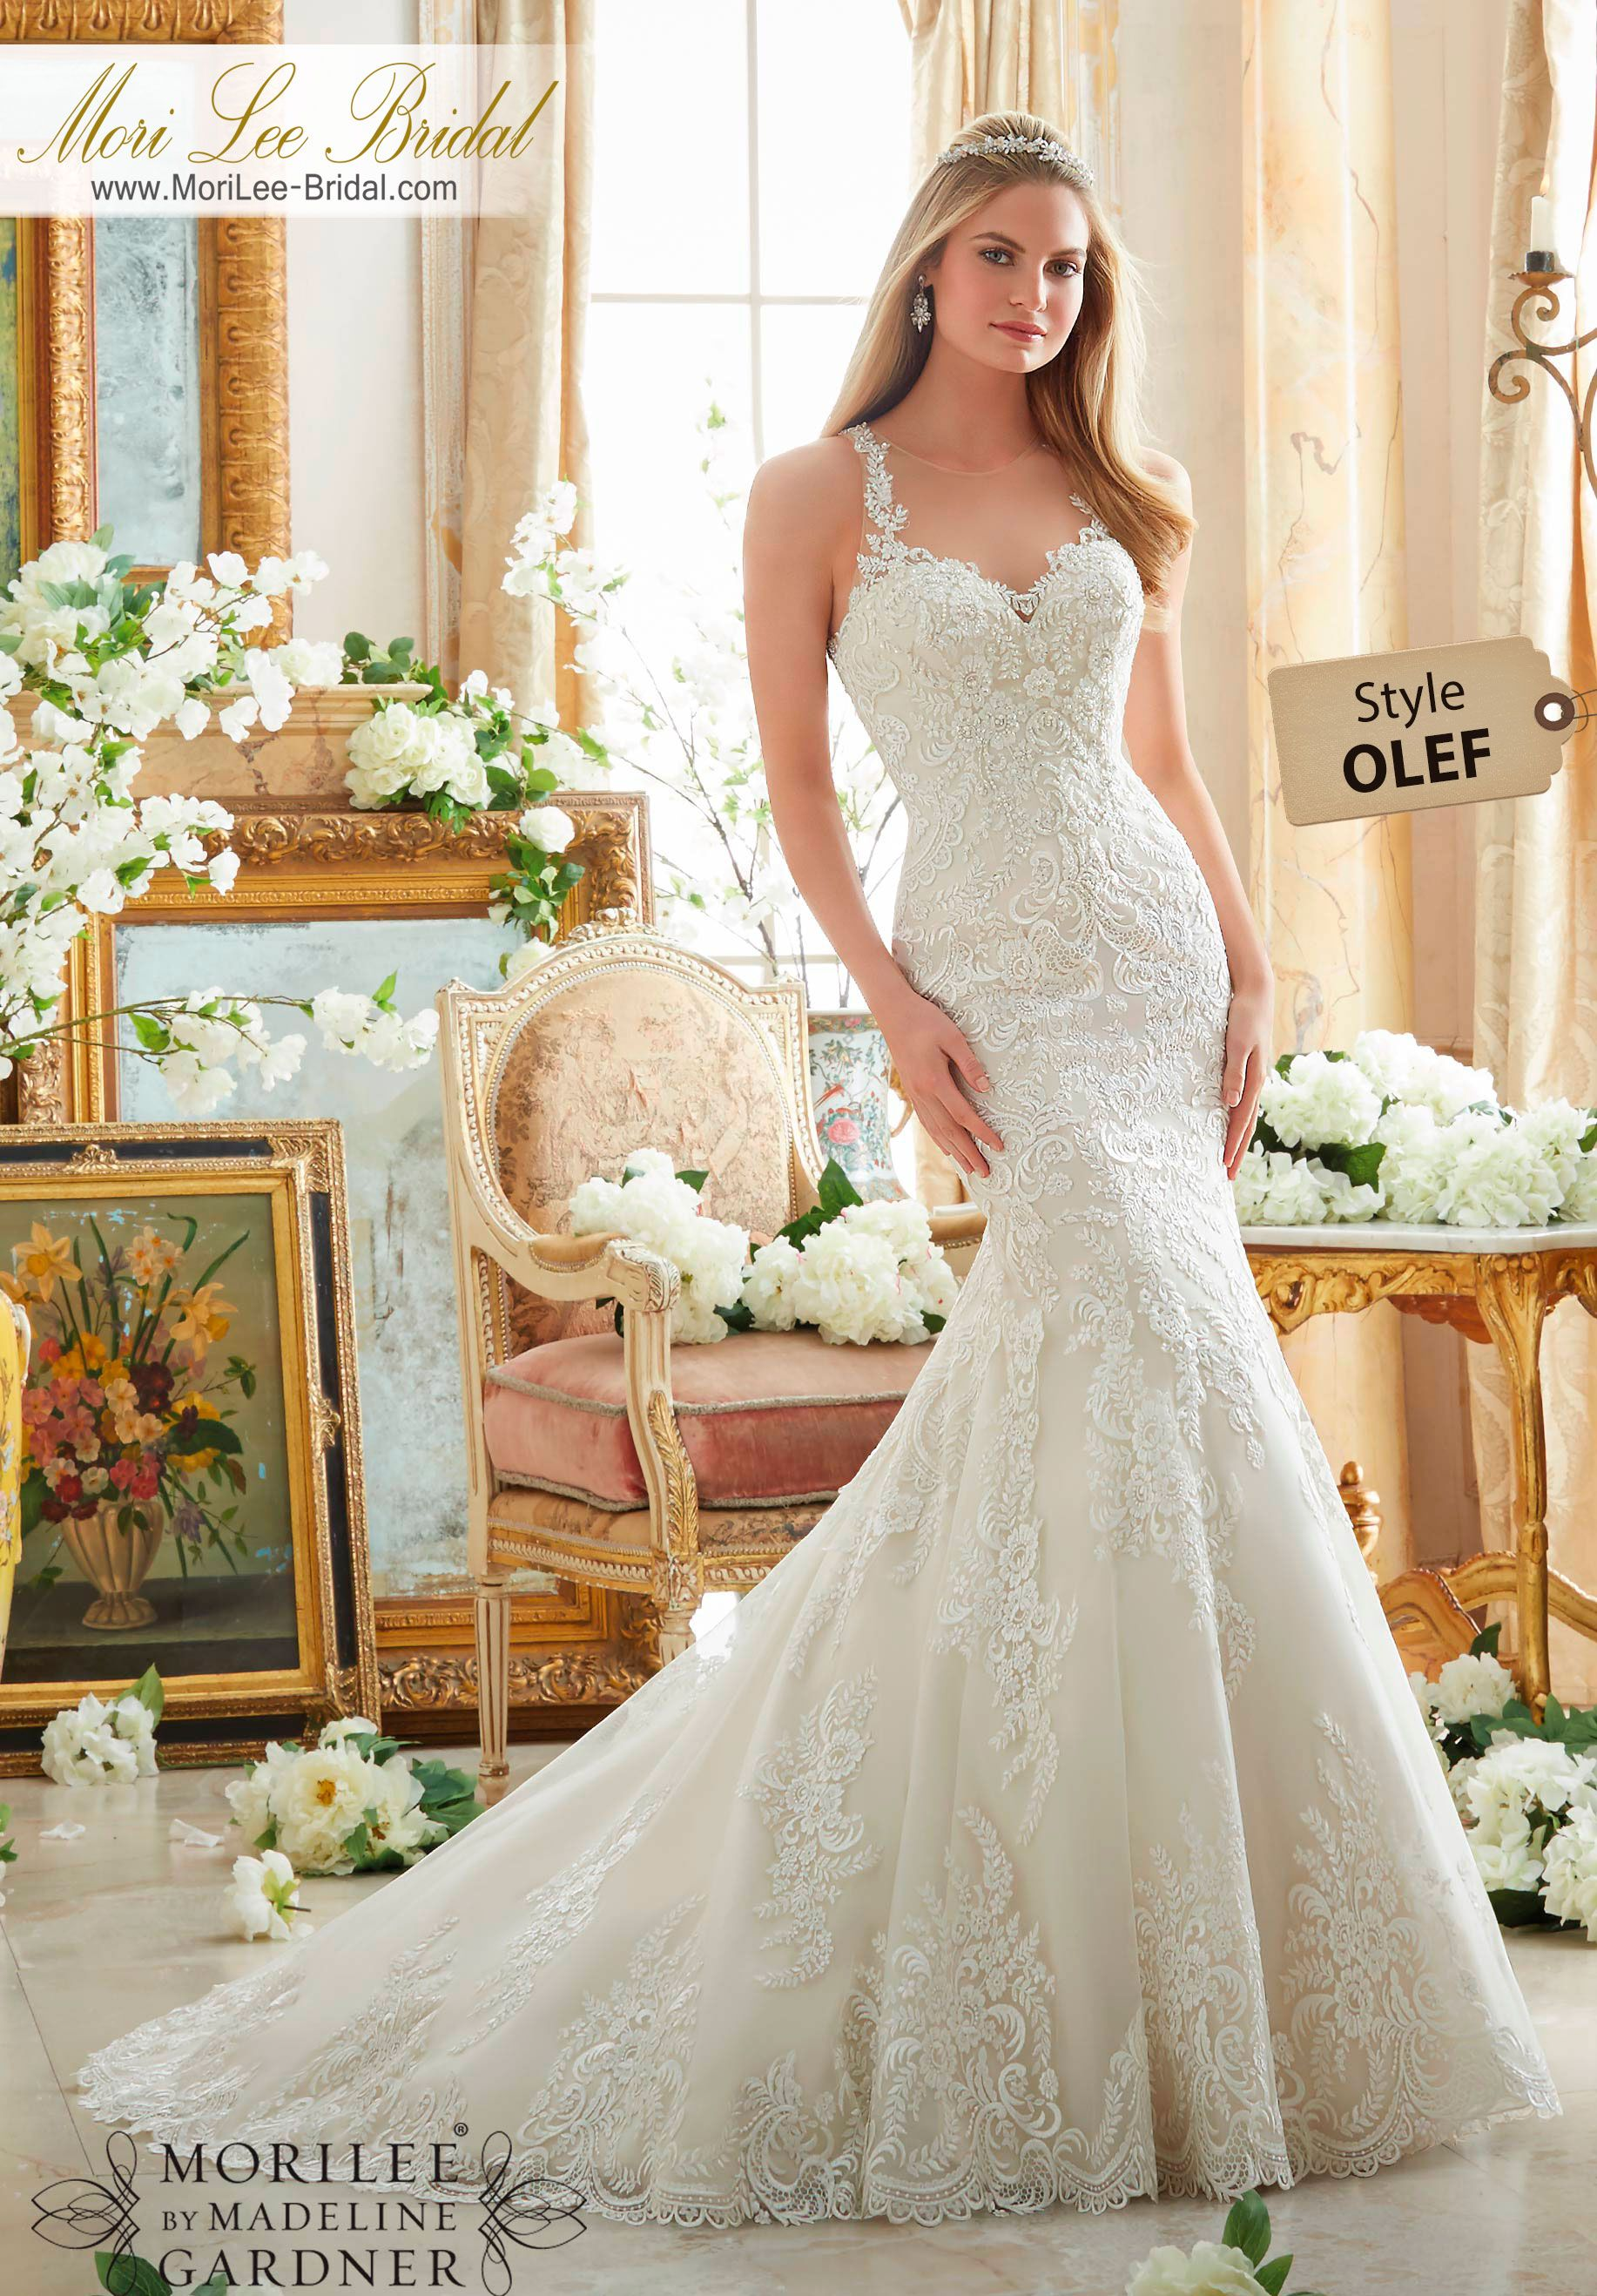 Wedding dresses for broad shoulders  Dress Style OLEF EMBROIDERED LACE ON SOFT NET WITH WIDE HEMLINE